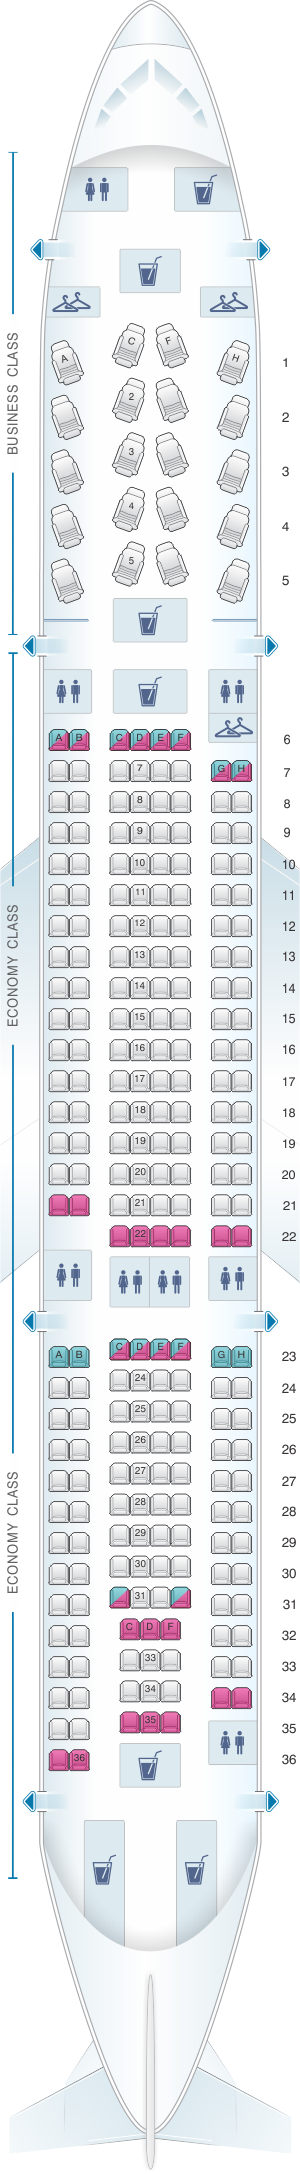 Seat map for US Airways Airbus A330 200